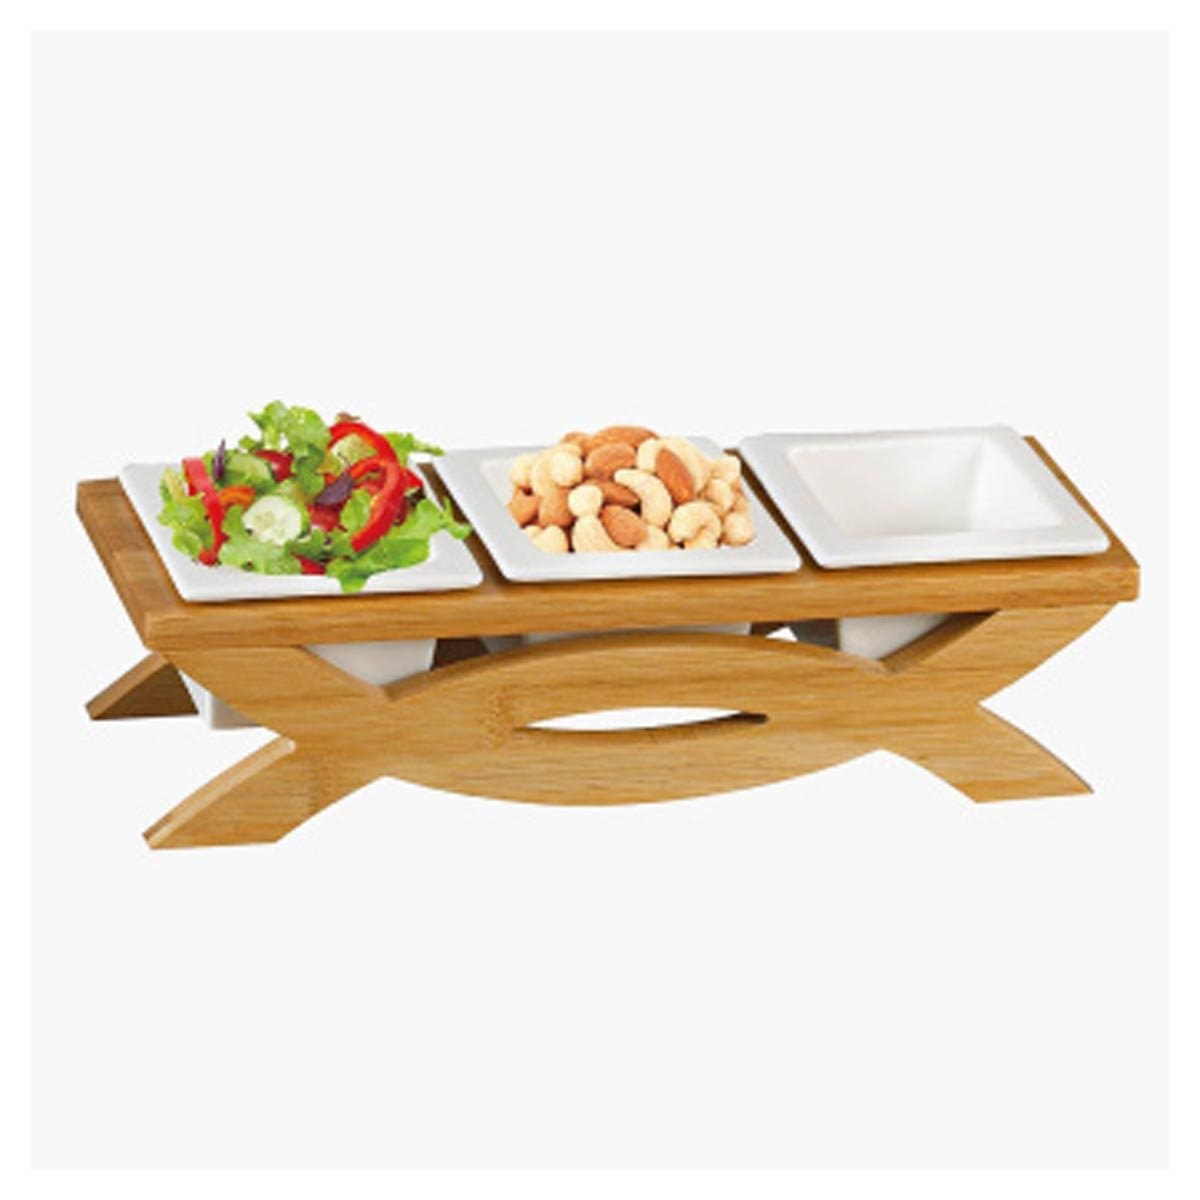 Shallow 3-Compartment Serving Bowl with Stand